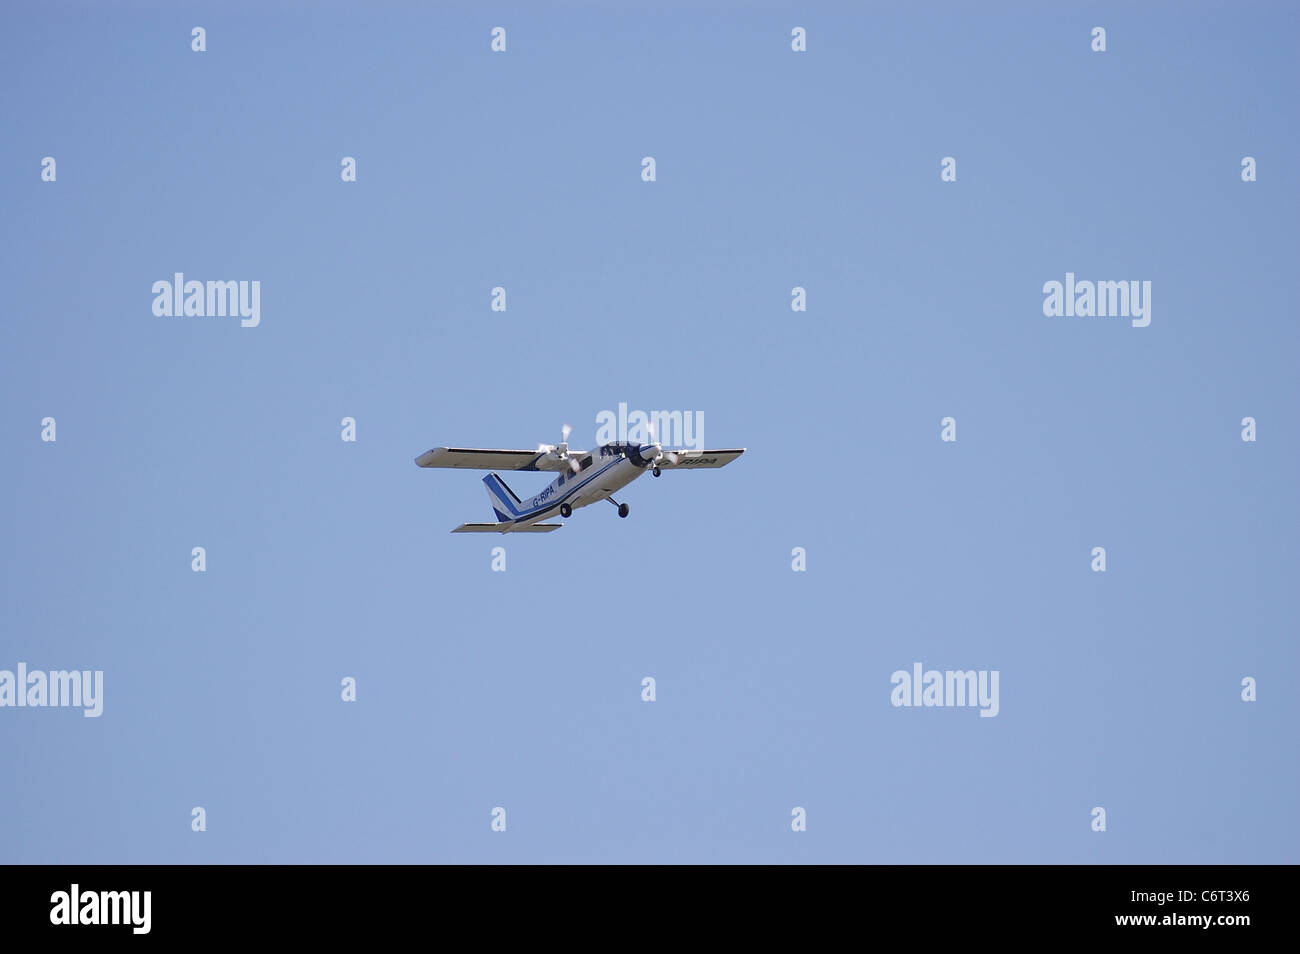 Twin engined propeller aircraft in flight - Stock Image